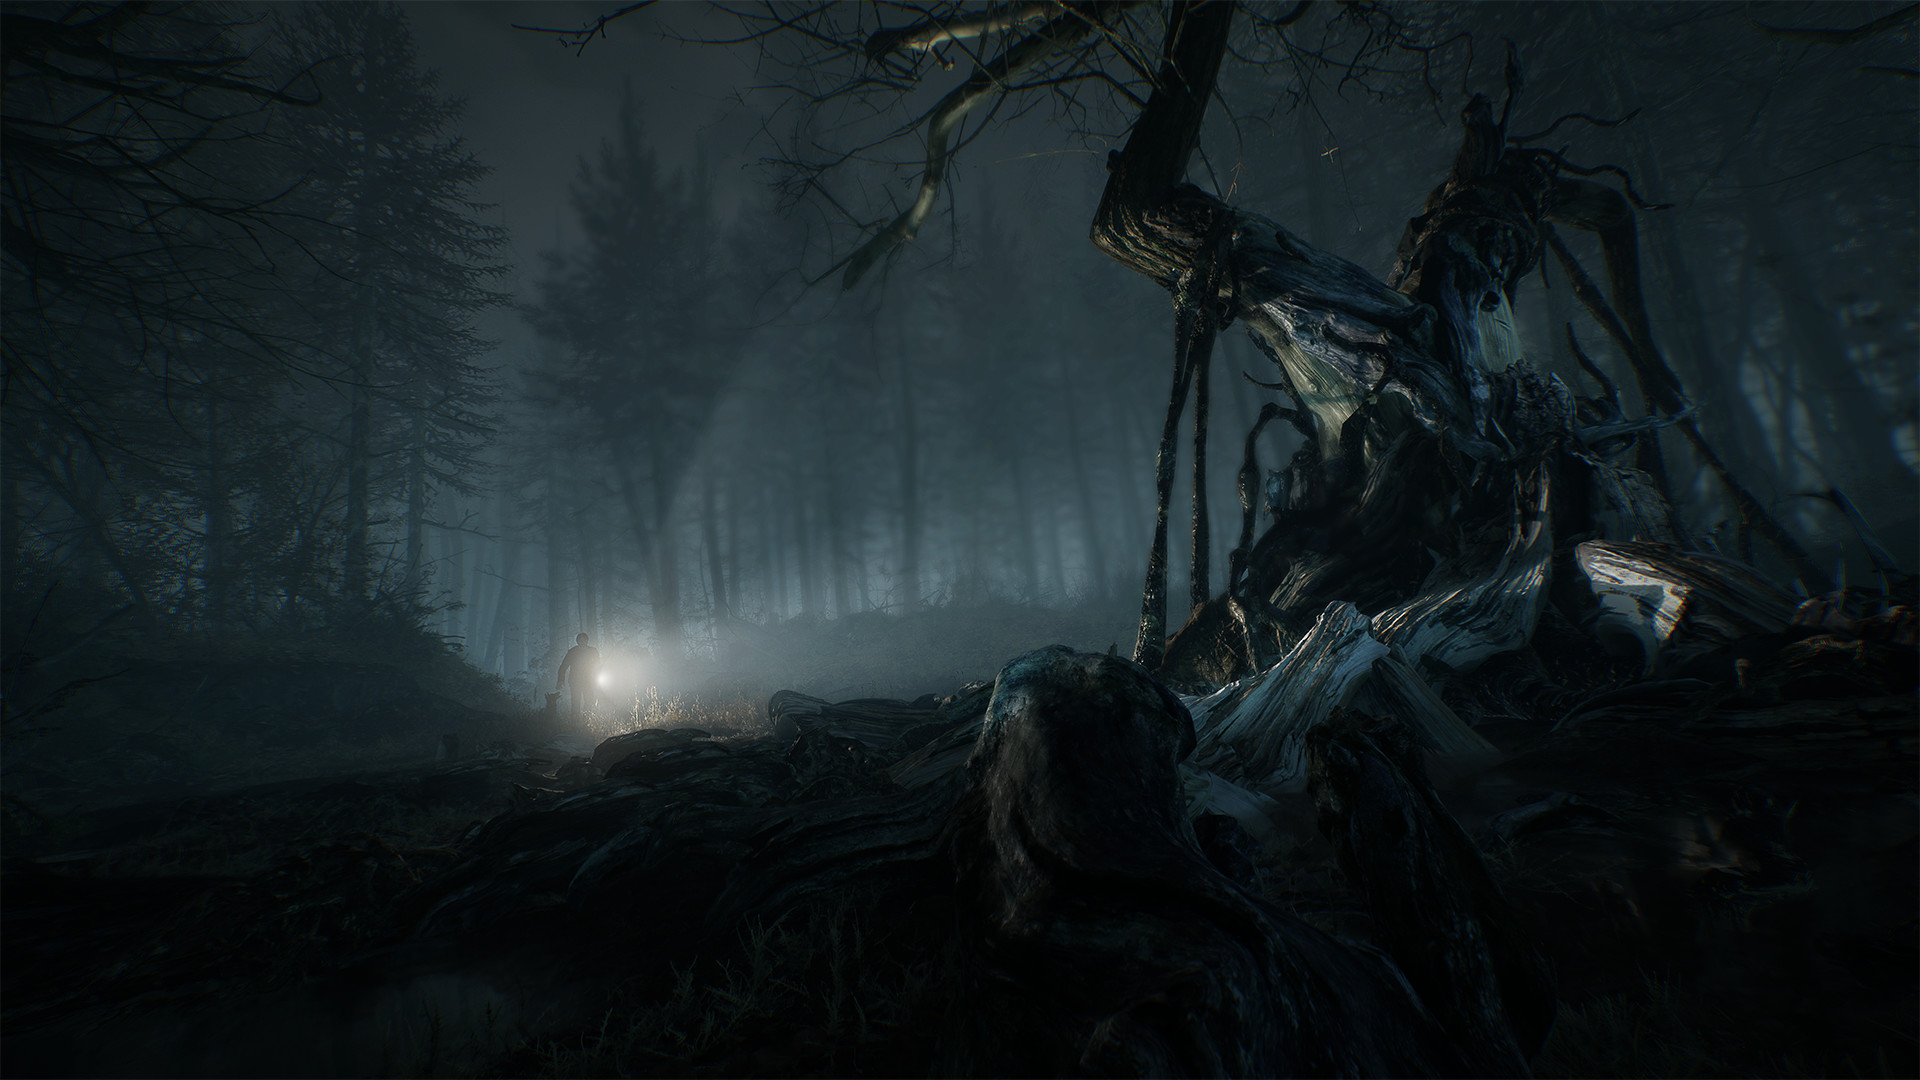 Blair Witch Looks Terrifying In New Gameplay Footage, But You Can Pet The Dog